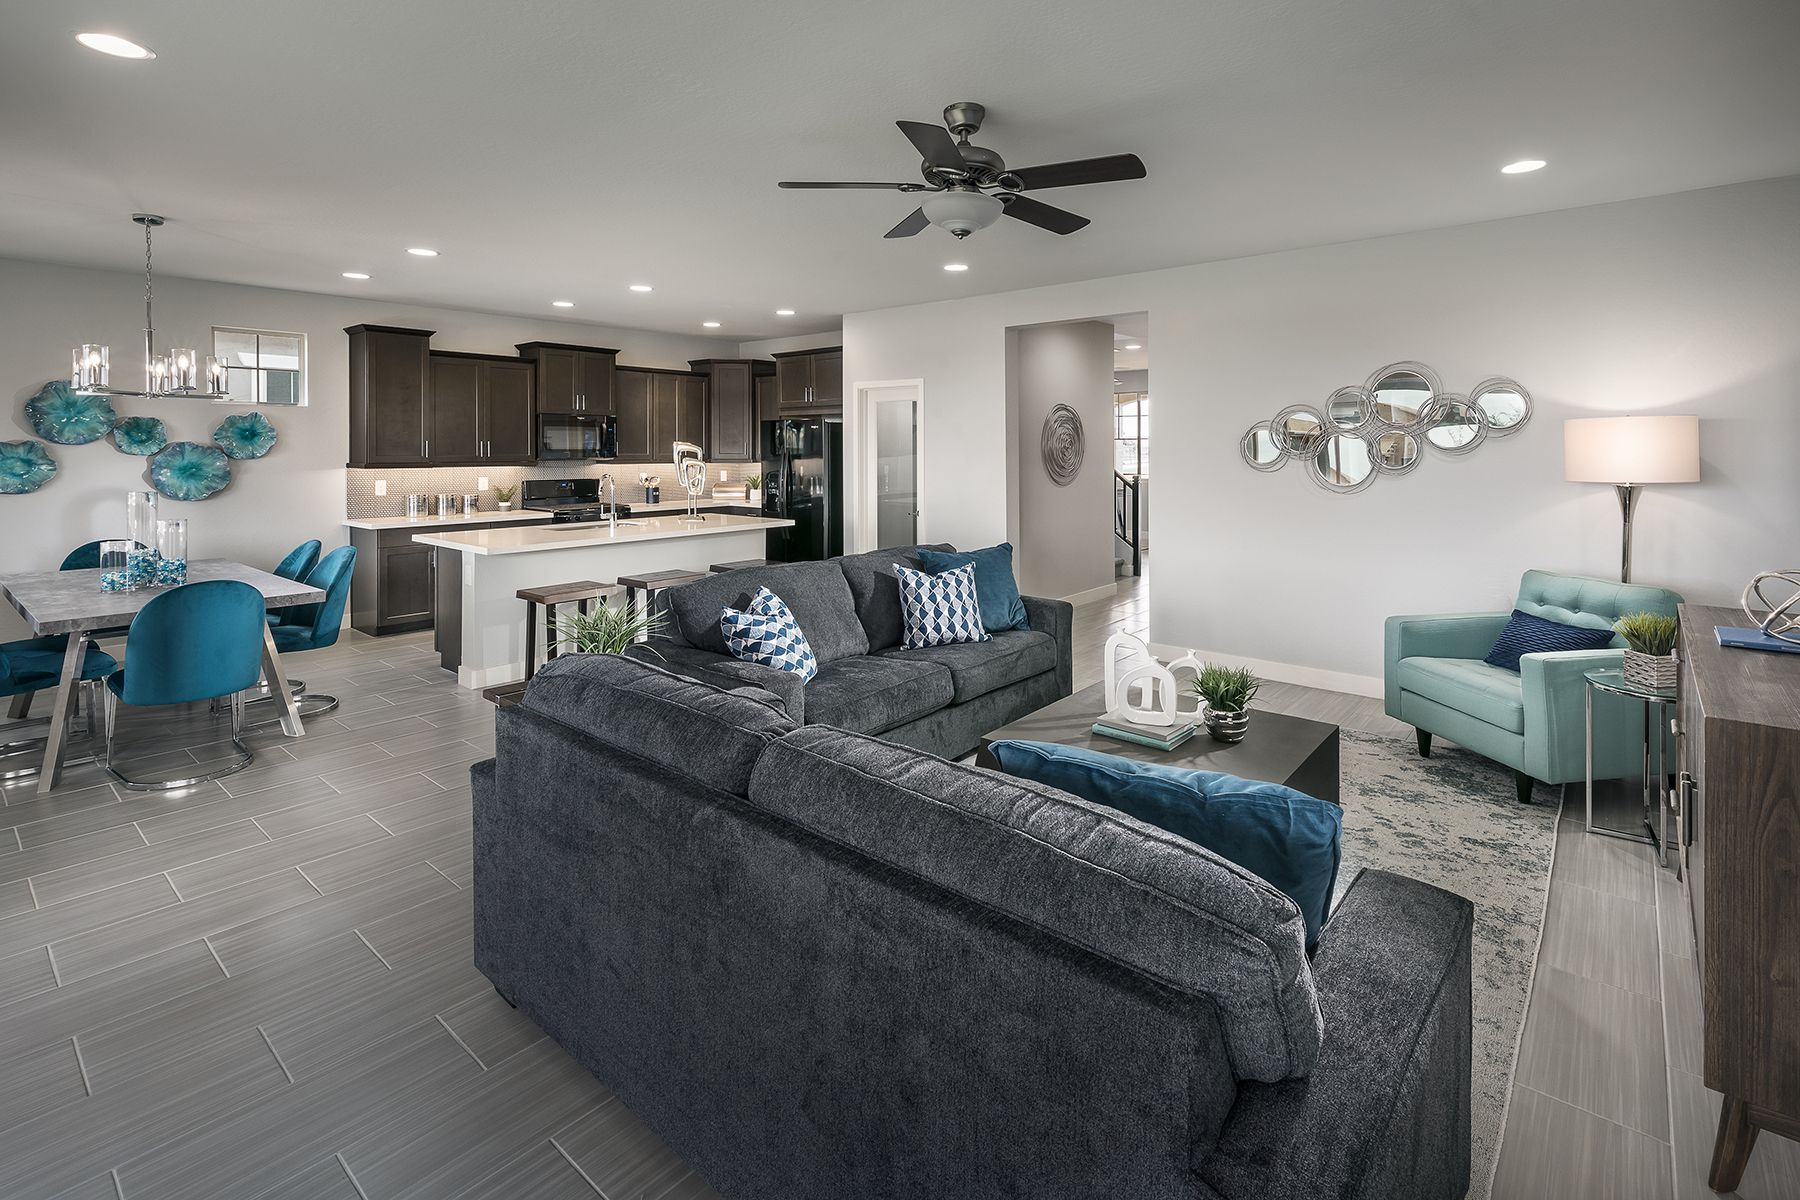 Living Area featured in the Willowleaf By Mattamy Homes in Phoenix-Mesa, AZ